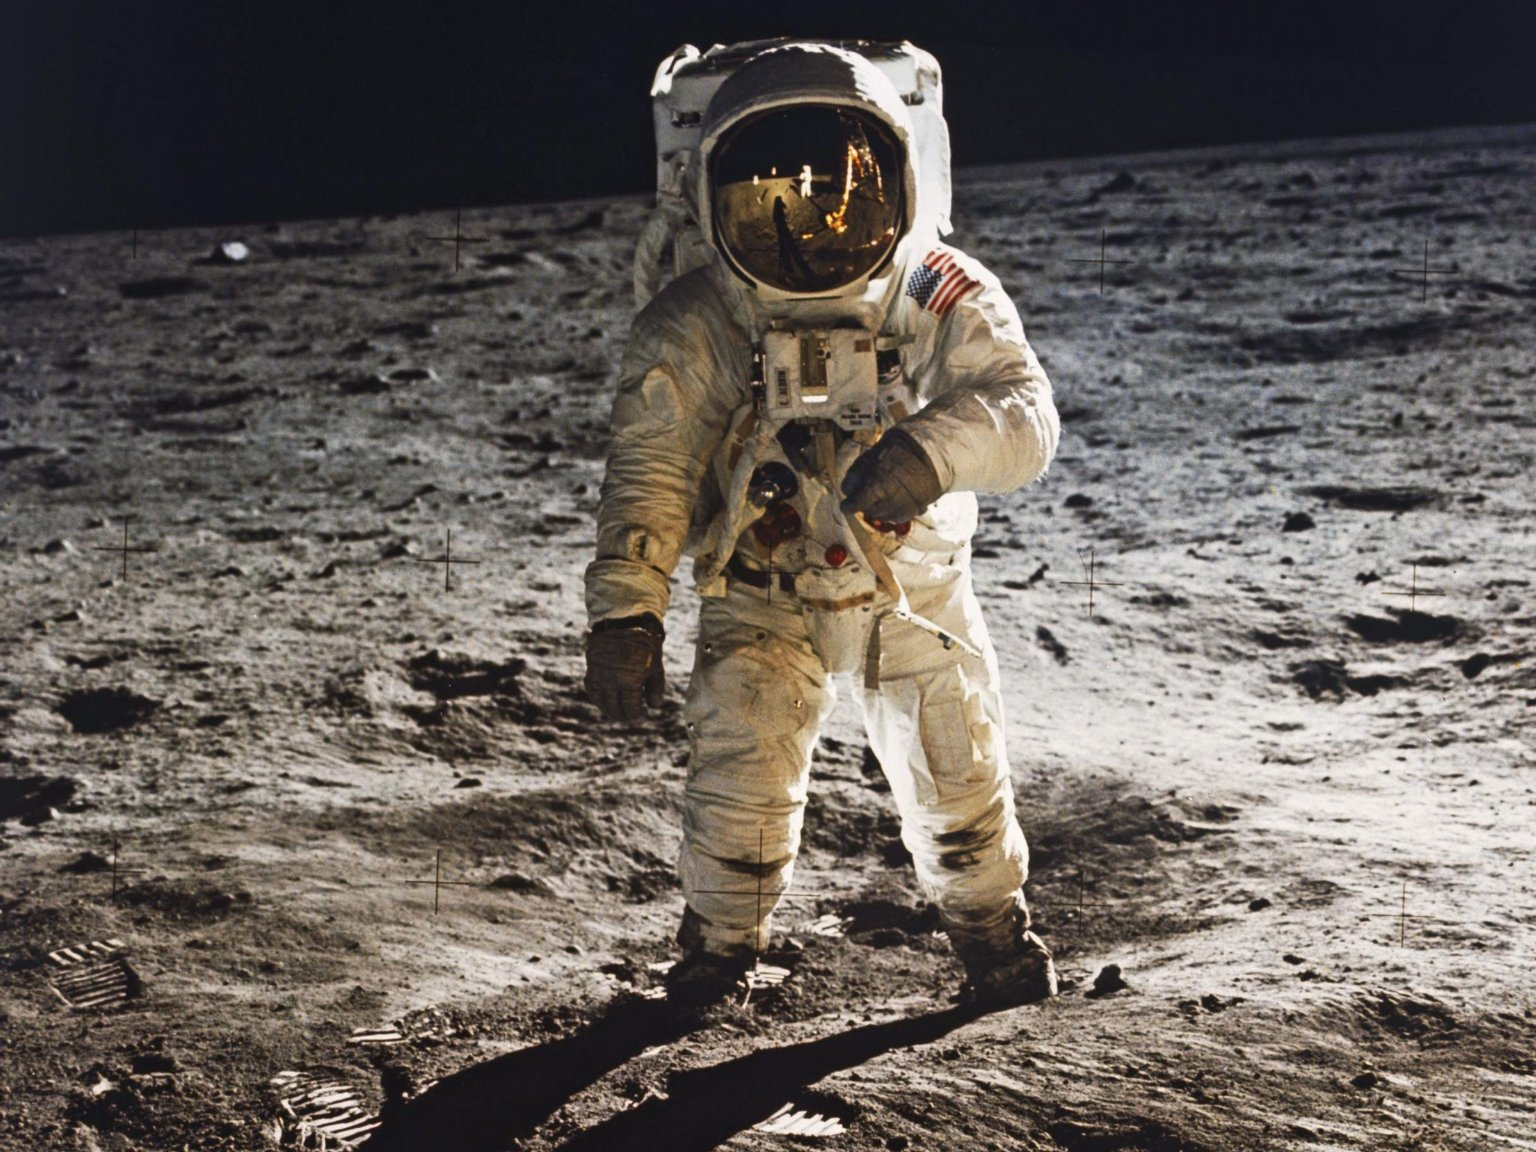 Buzz Aldrin Walks on the Moon in 1969